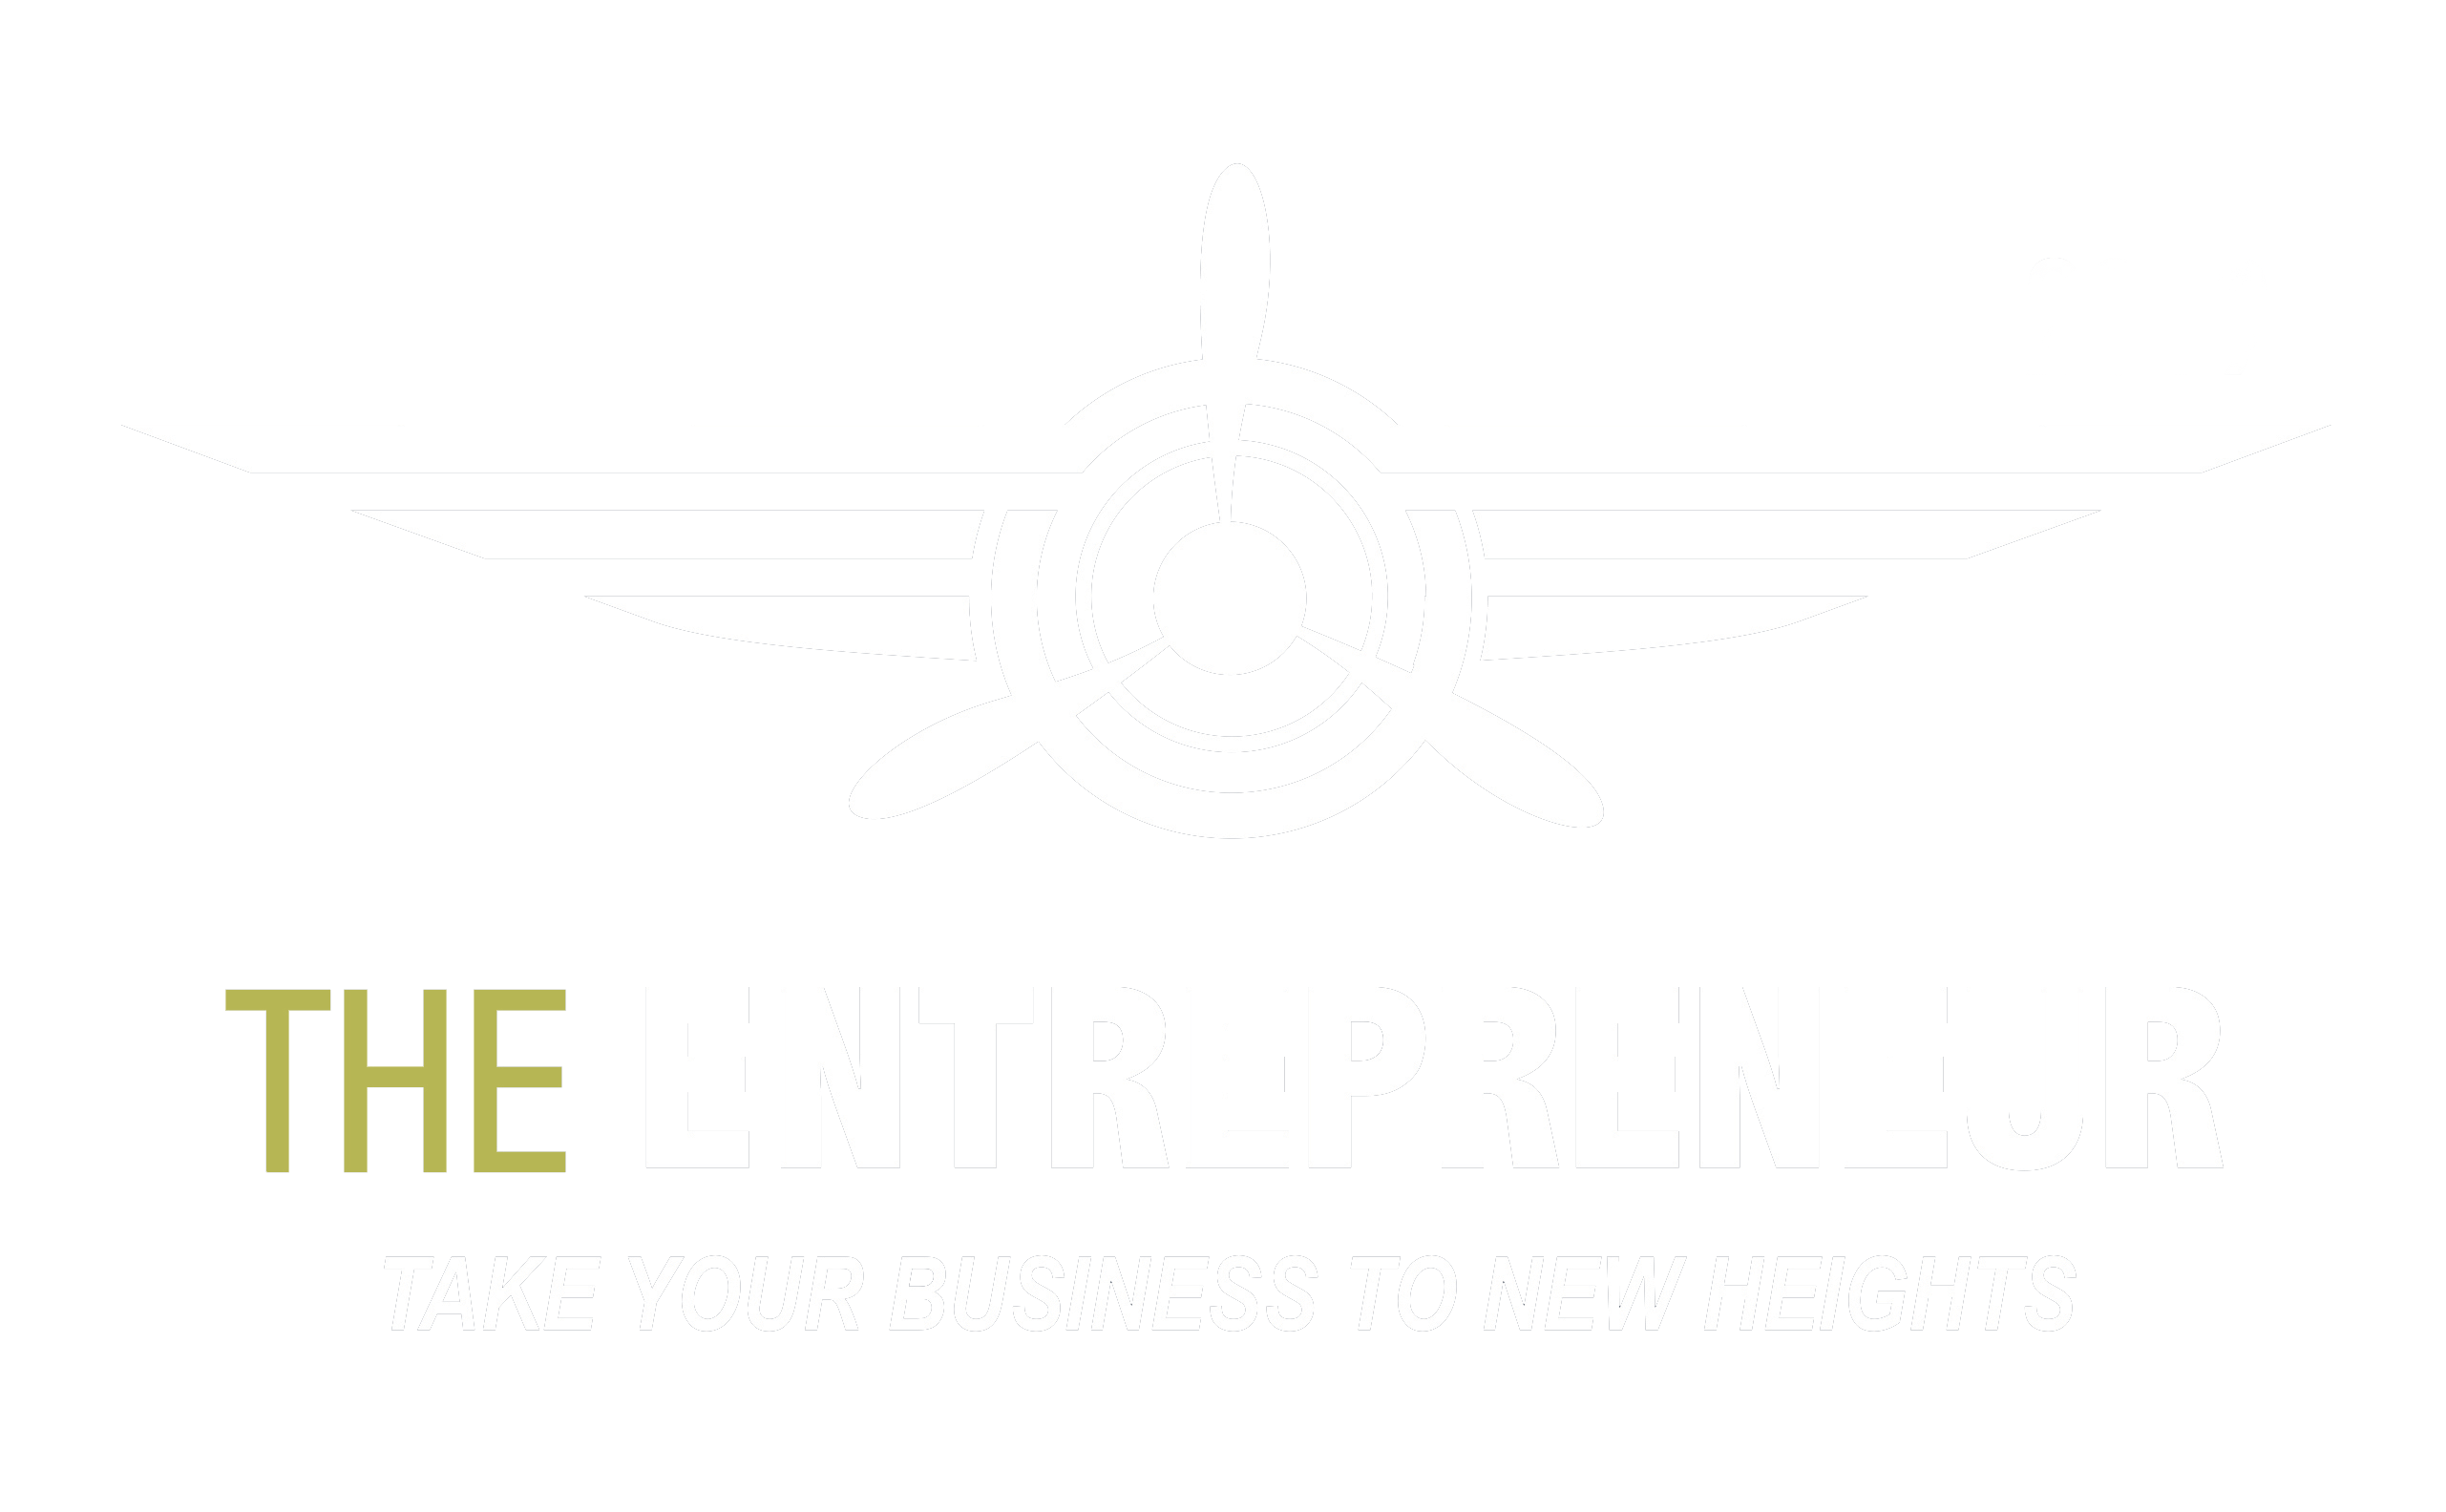 The Entrepreneur